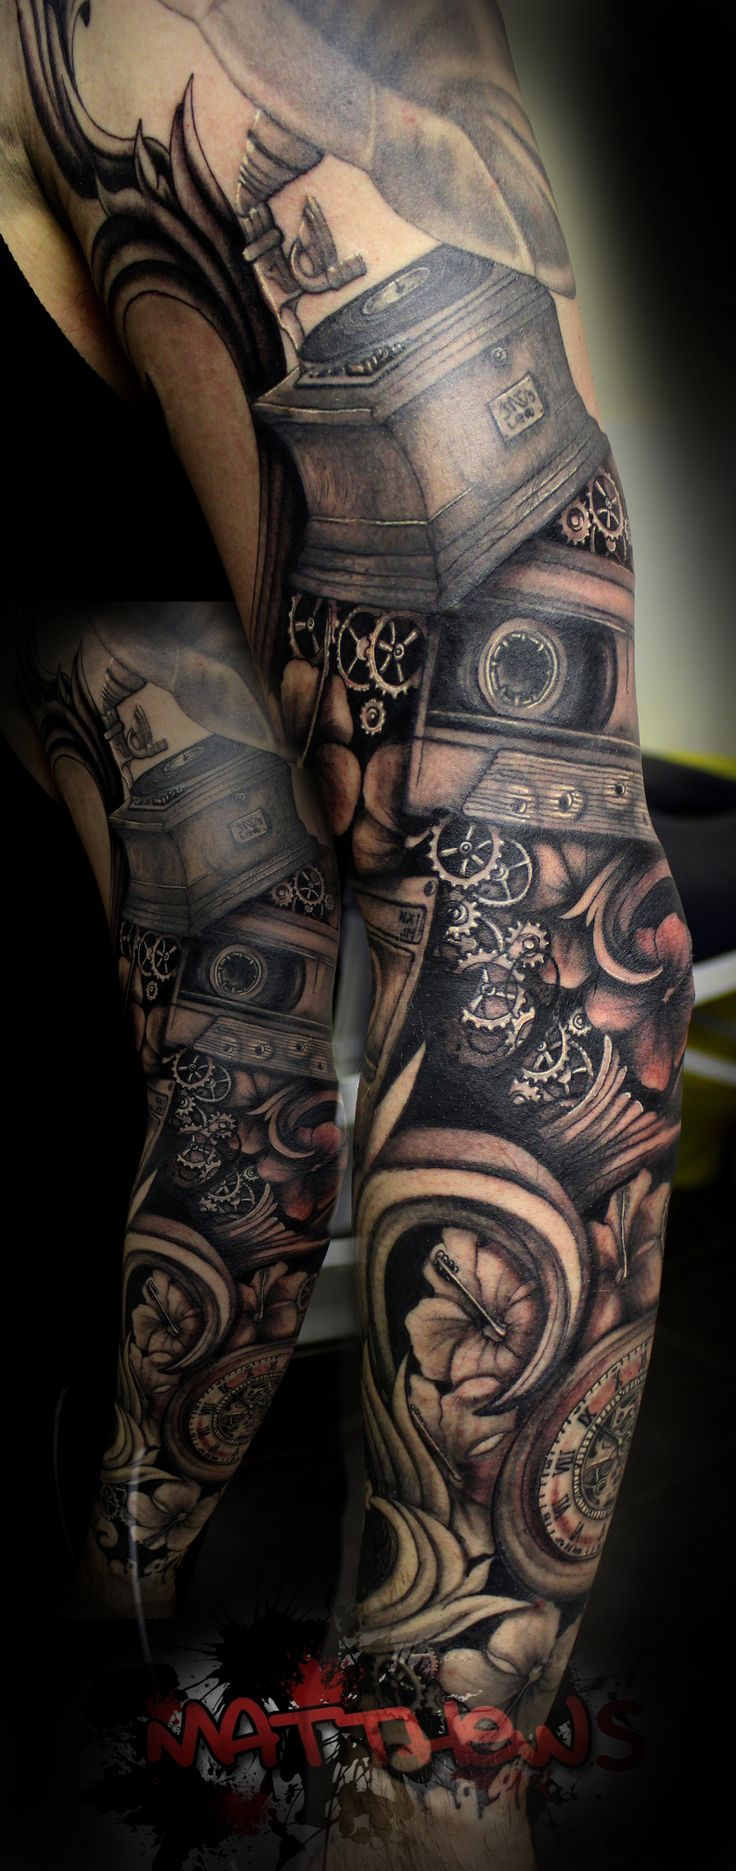 Custom black and grey sleeve   Proudly sponsored by Body Shock tattoo supplies.